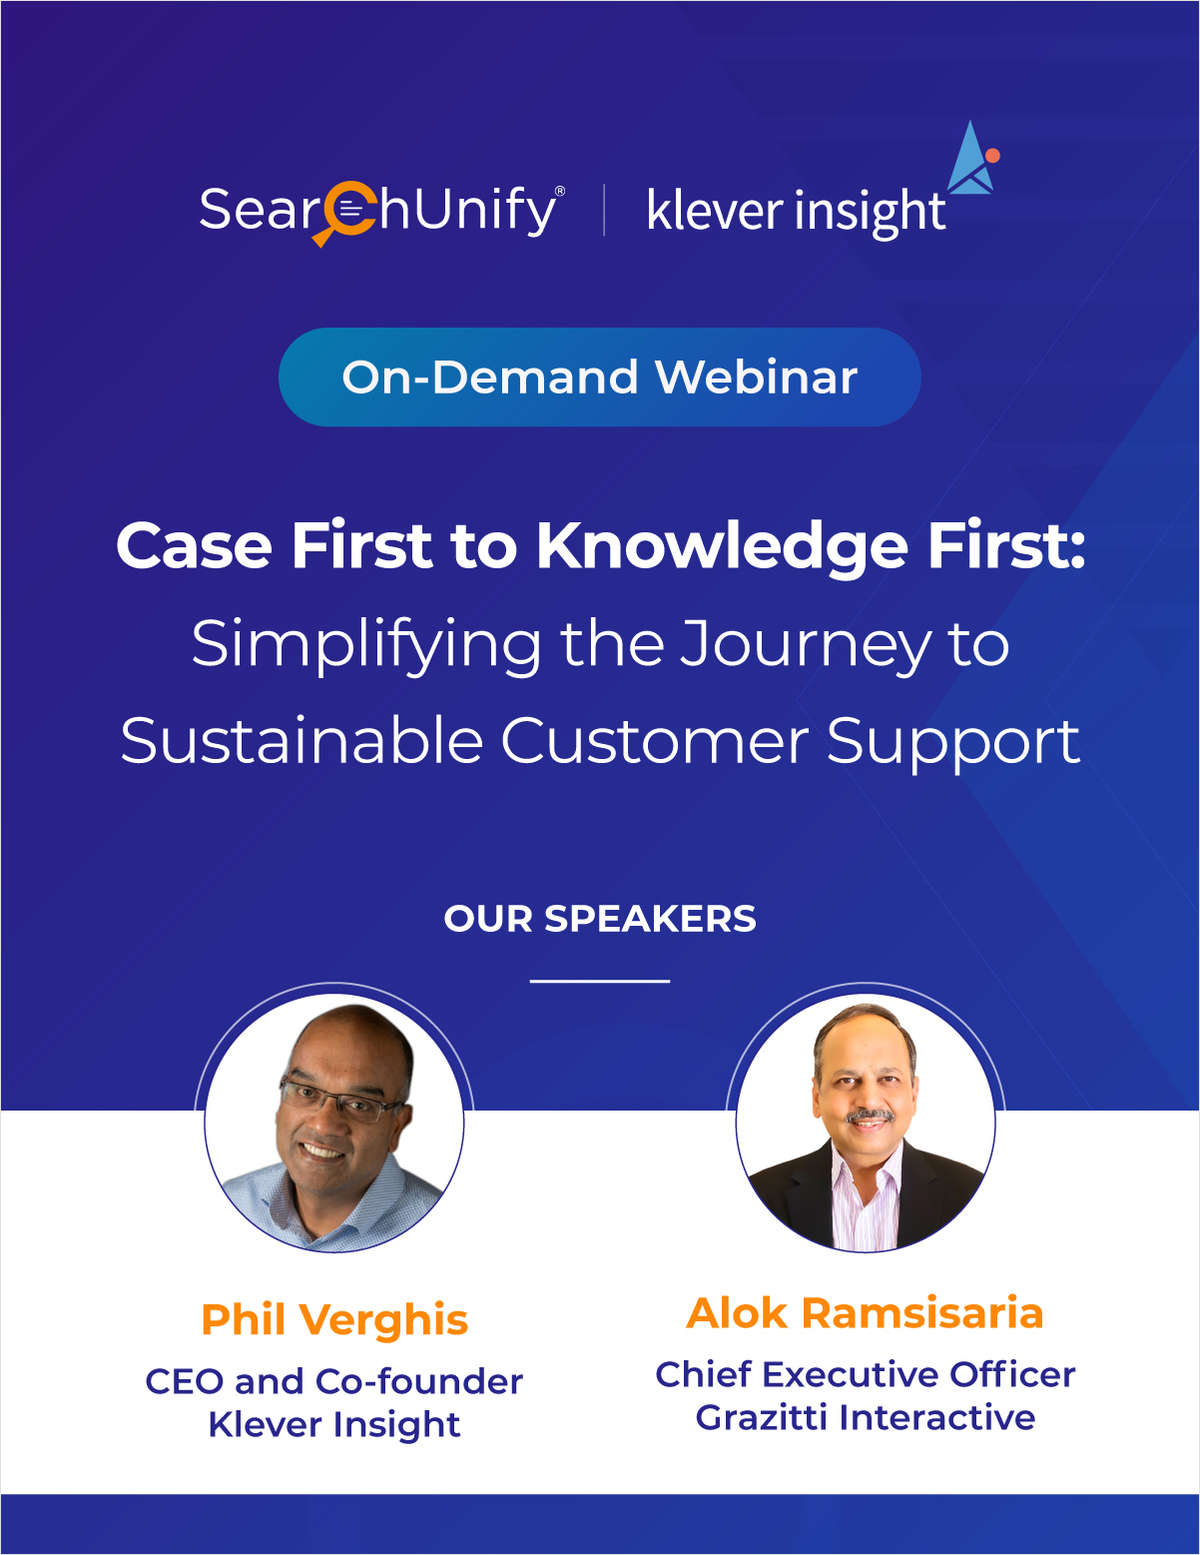 Case First To Knowledge First: Simplifying The Journey To Sustainable Customer Support